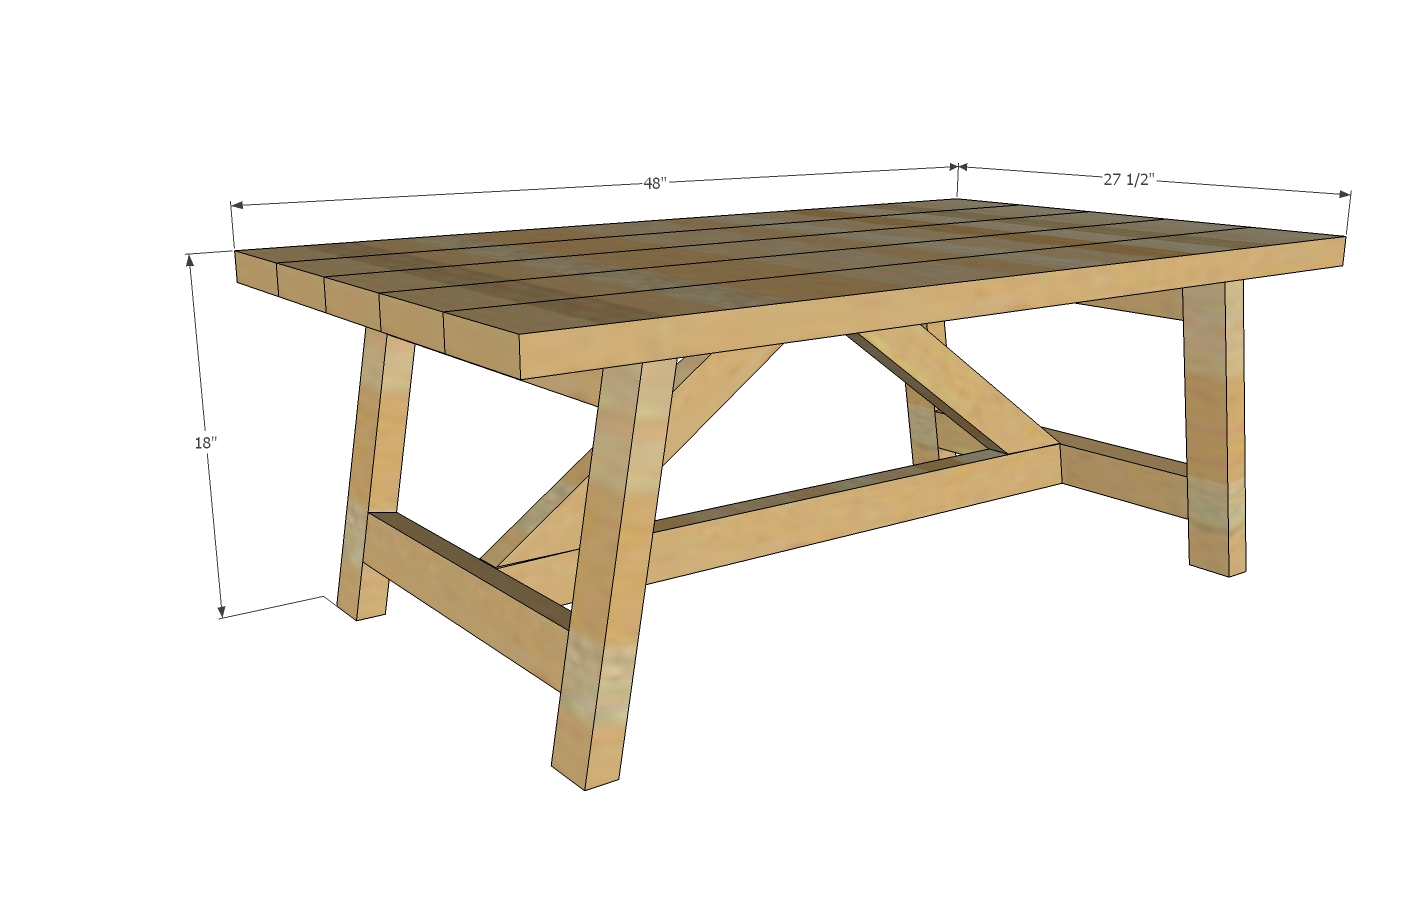 Mass wood working know more woodworking table plans for Wooden table designs images